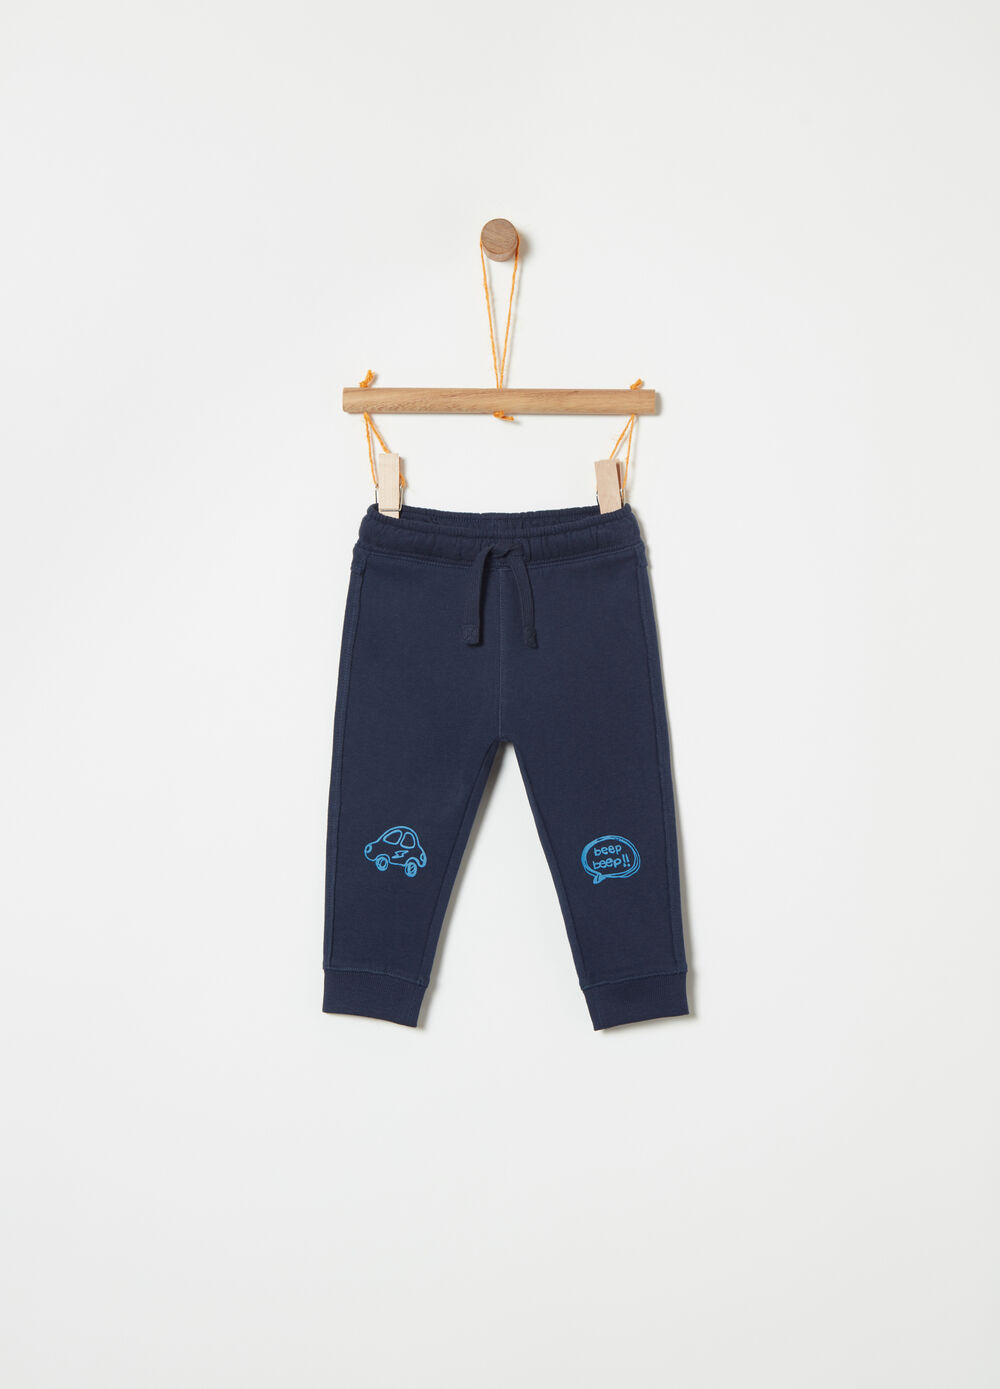 100% cotton printed joggers